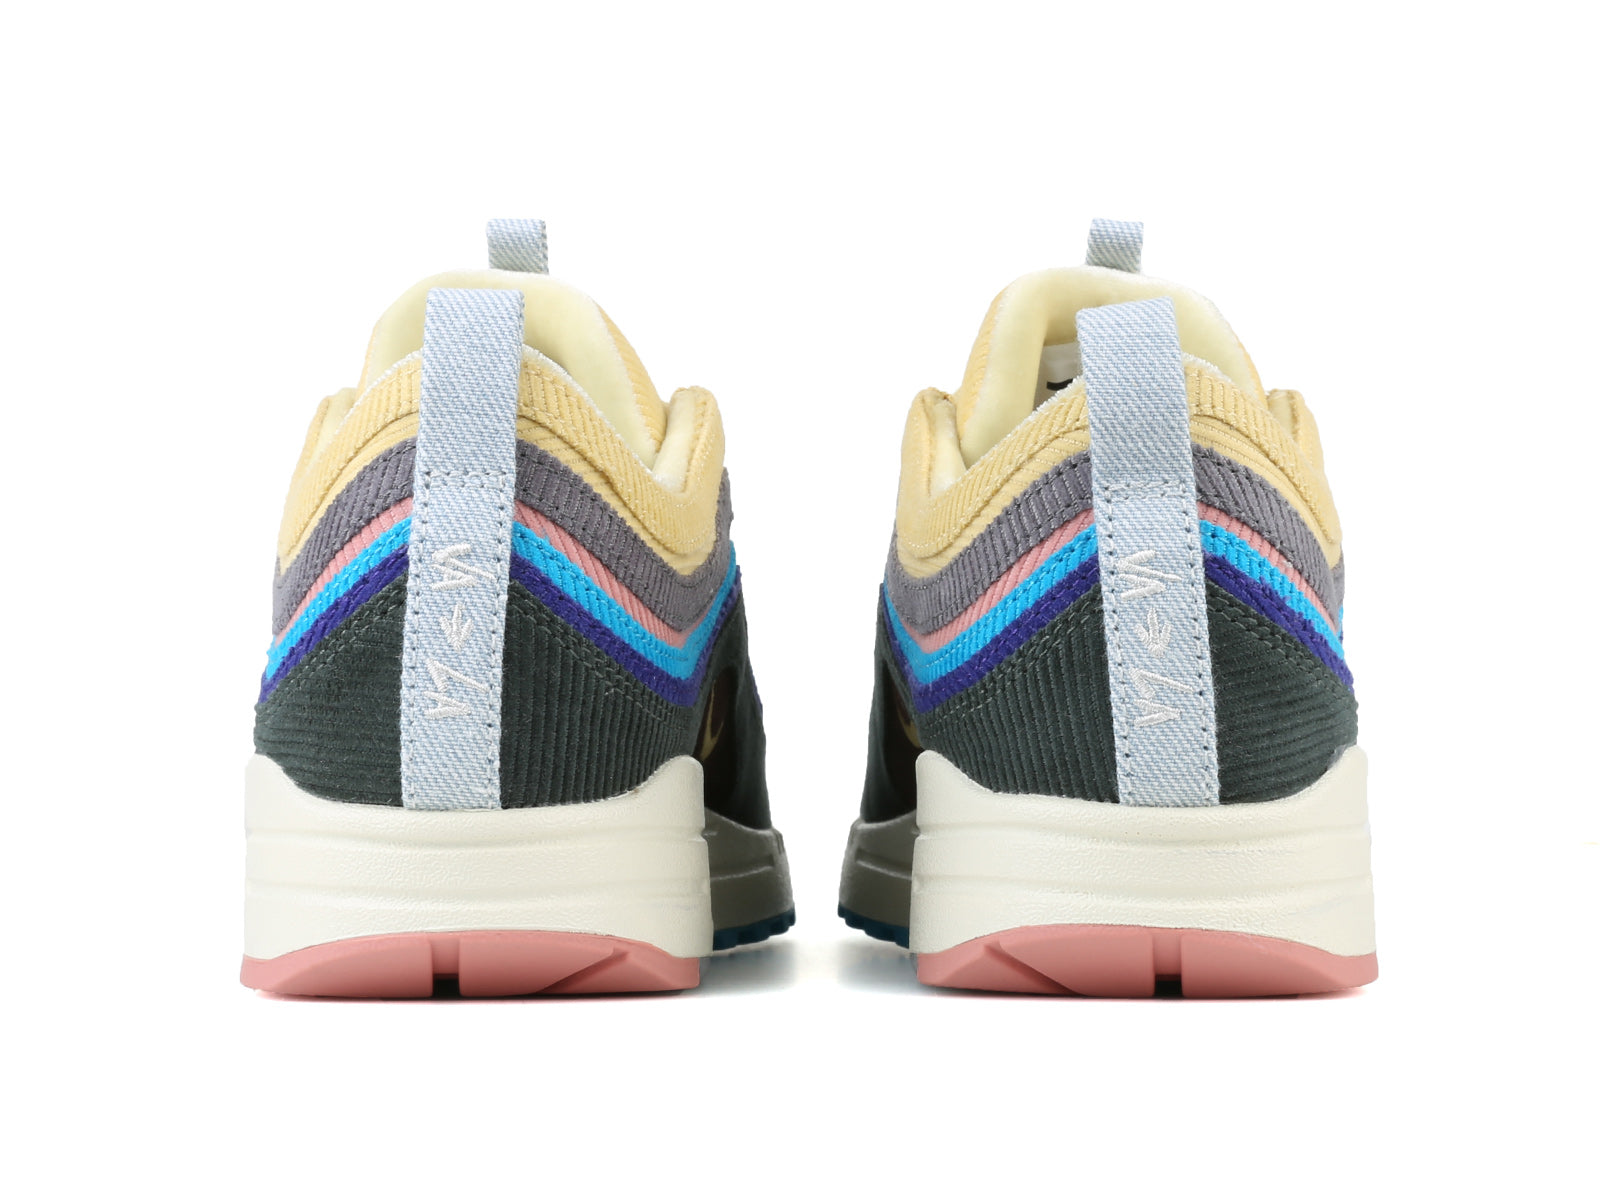 best service 3ca0d 3a5d5 3/26/18: Nike x Sean Wotherspoon Air Max 1/97 – Bodega